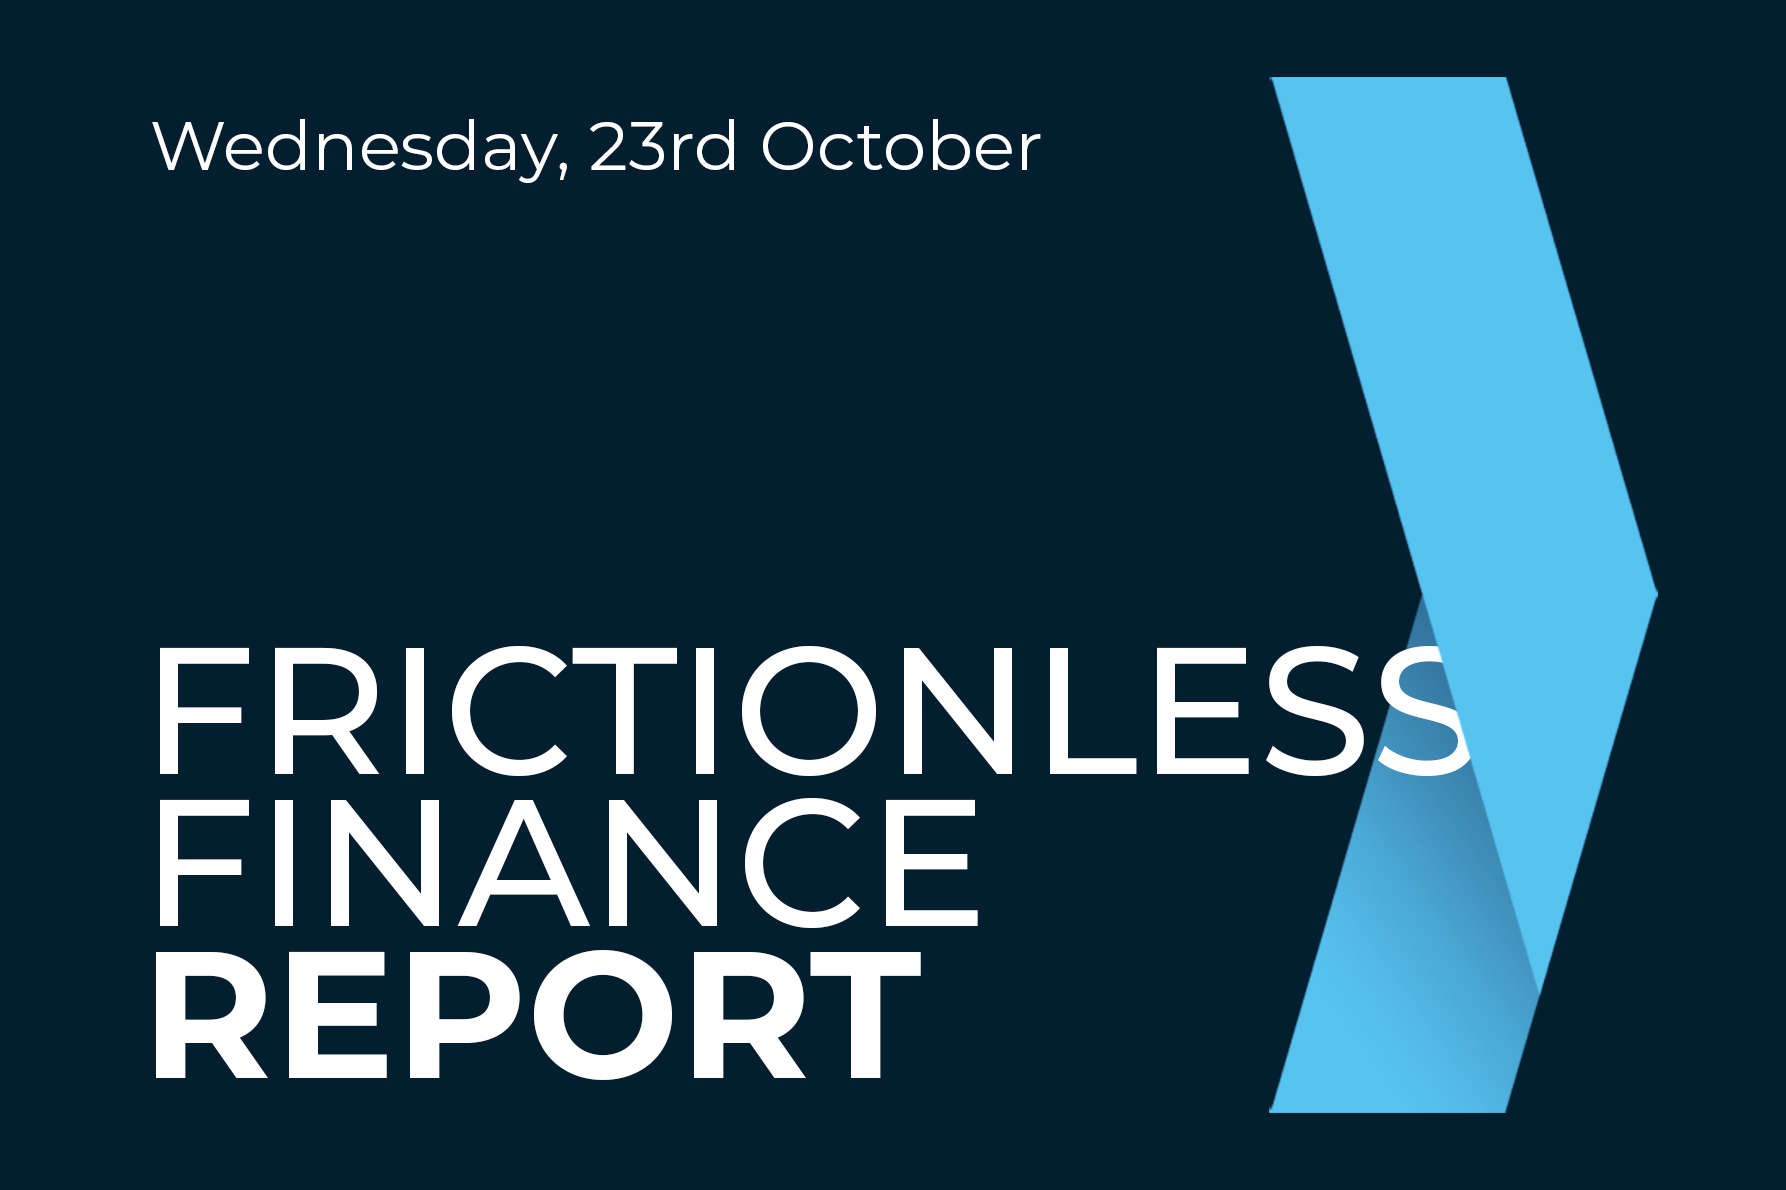 Frictionless Finance Report - Wednesday 23rd October 2019